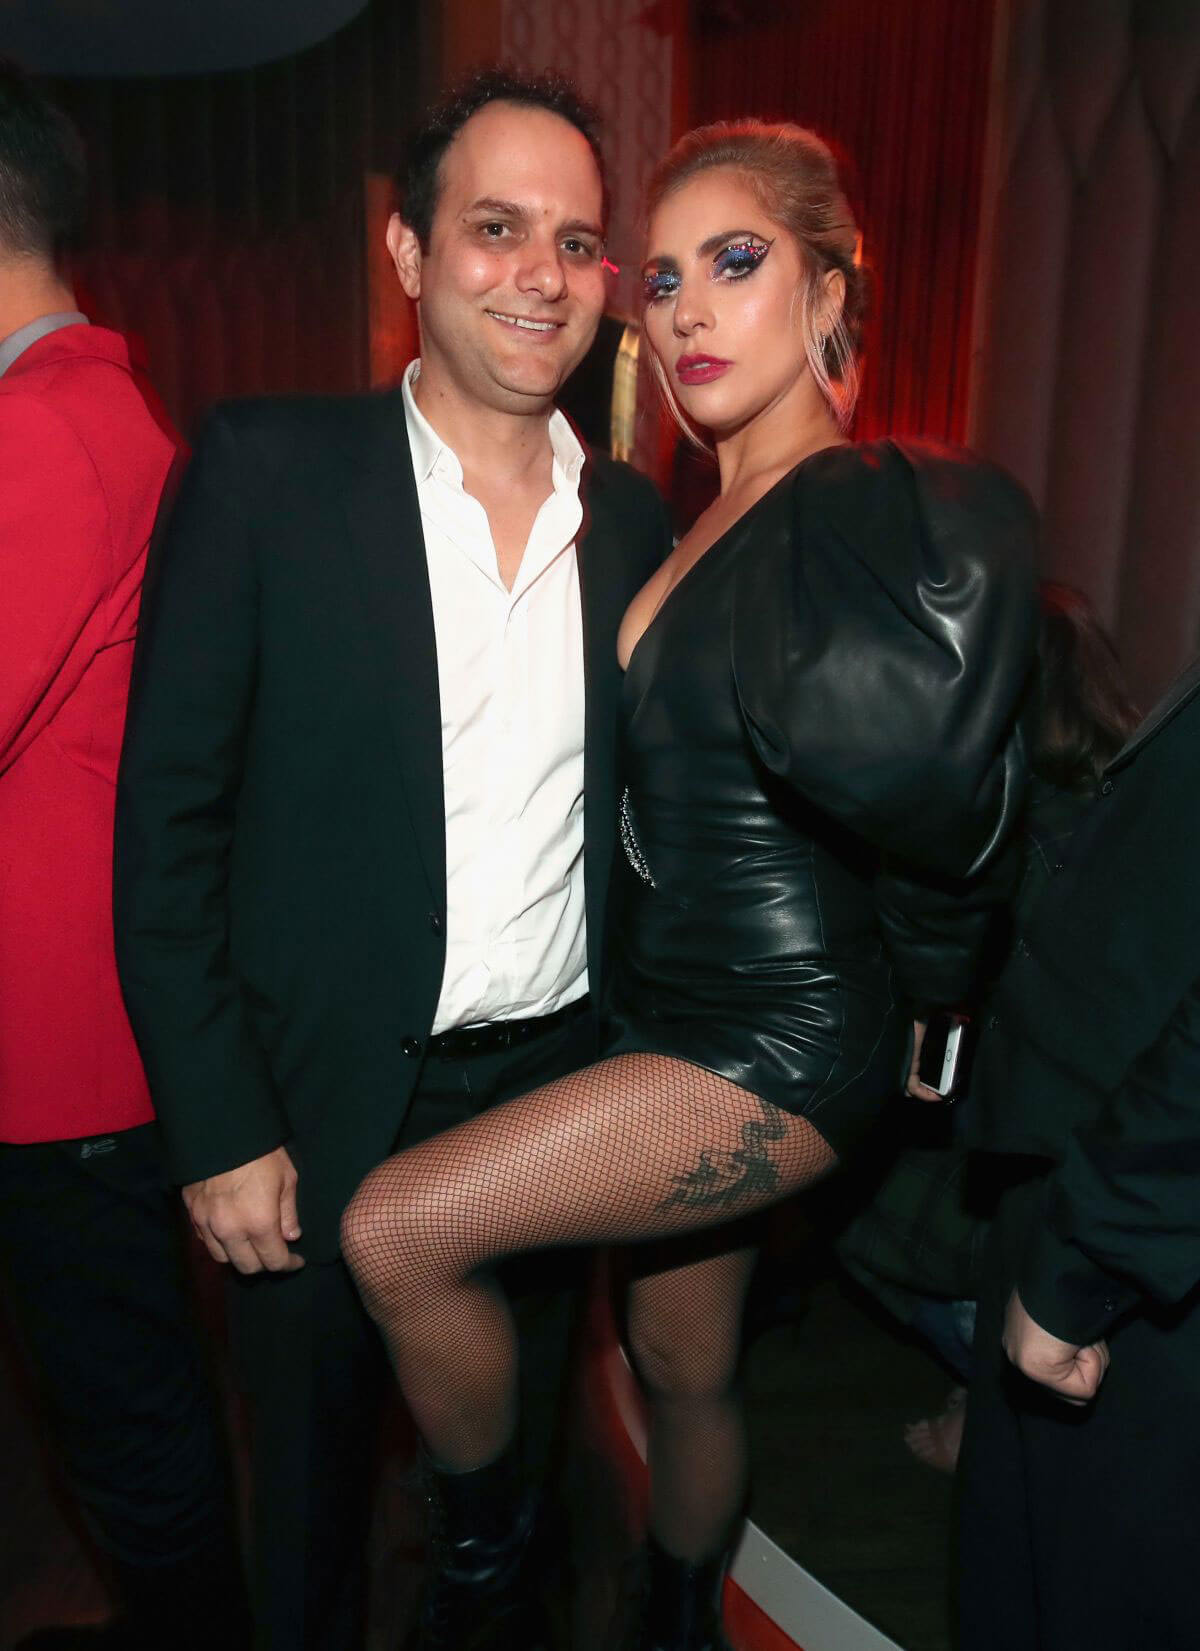 Lady Gaga at Interscope Grammy After Party in Los Angeles